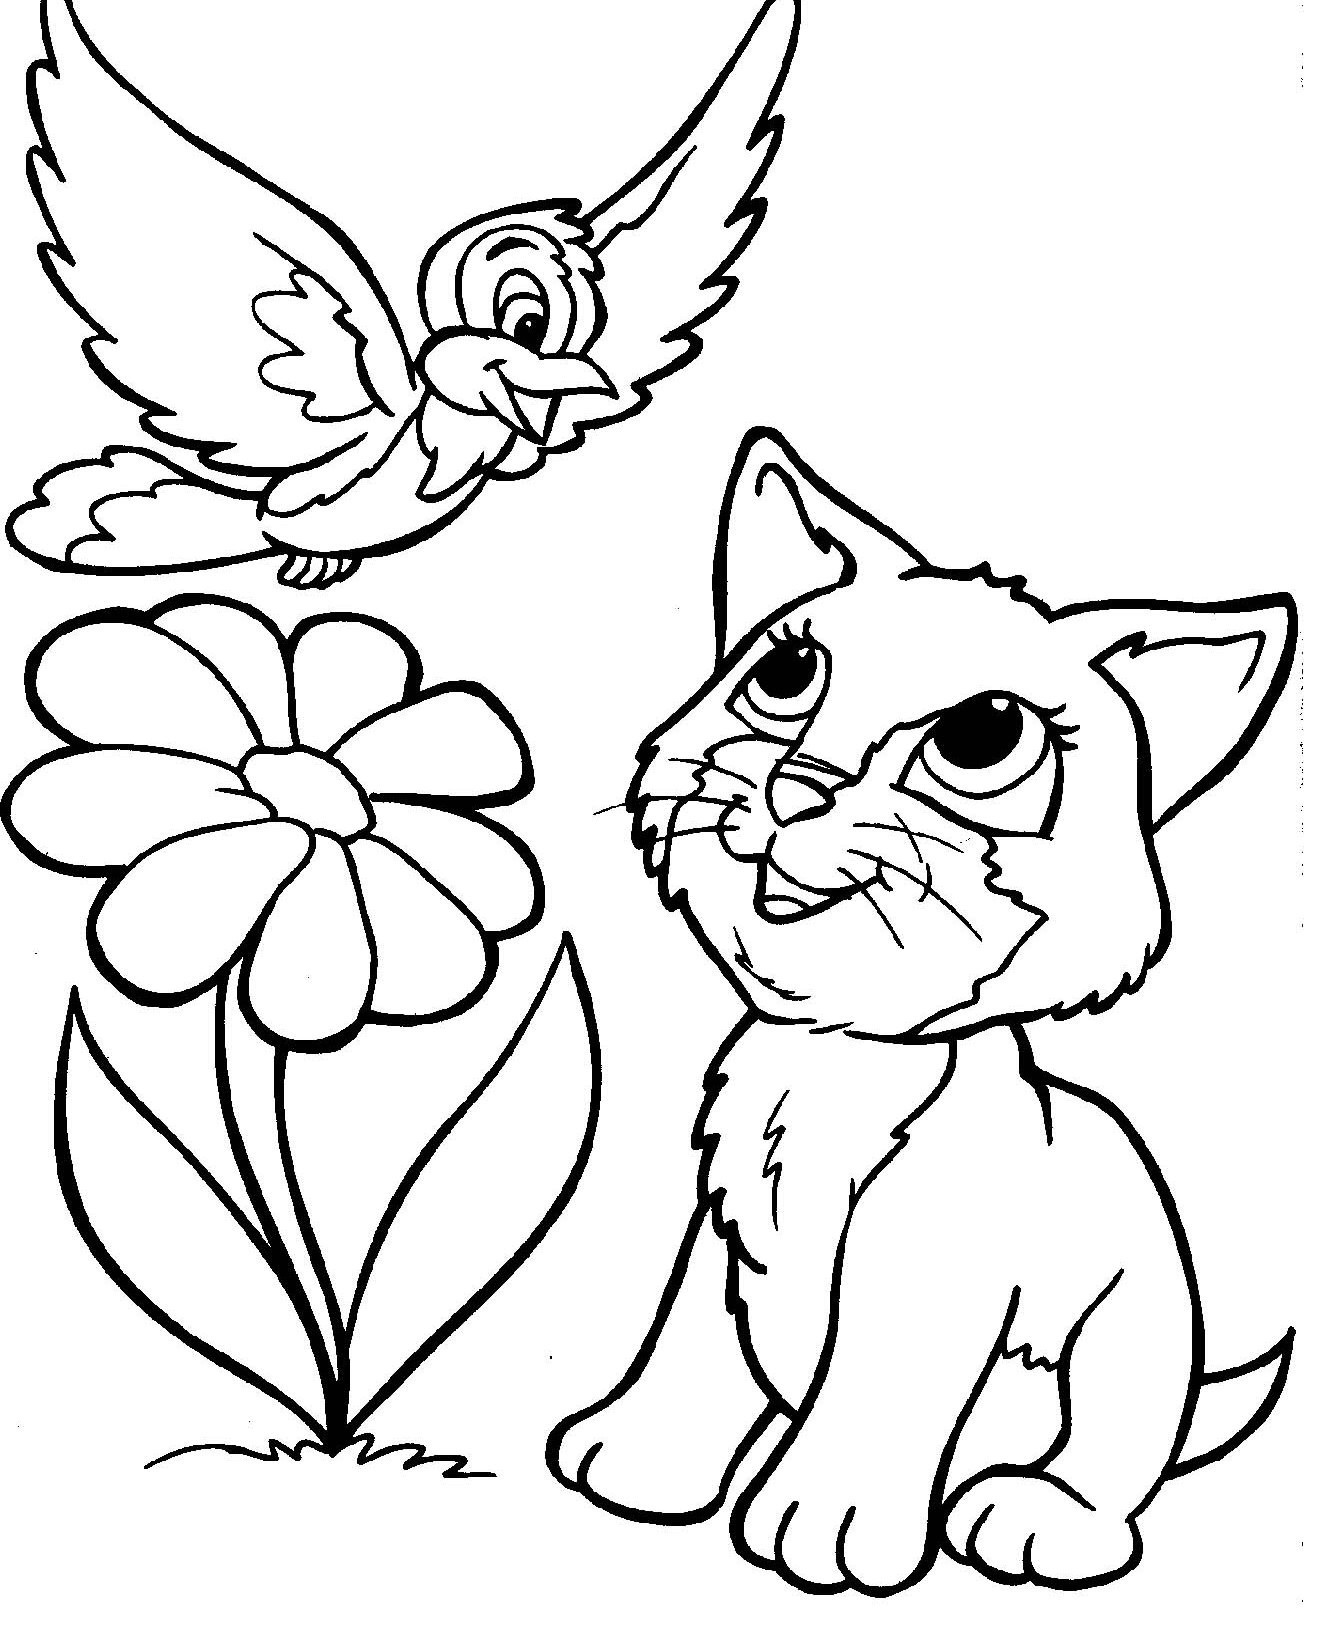 Cat Printable Coloring Pages Best Kitty Cat Coloring Pages 1000—1182